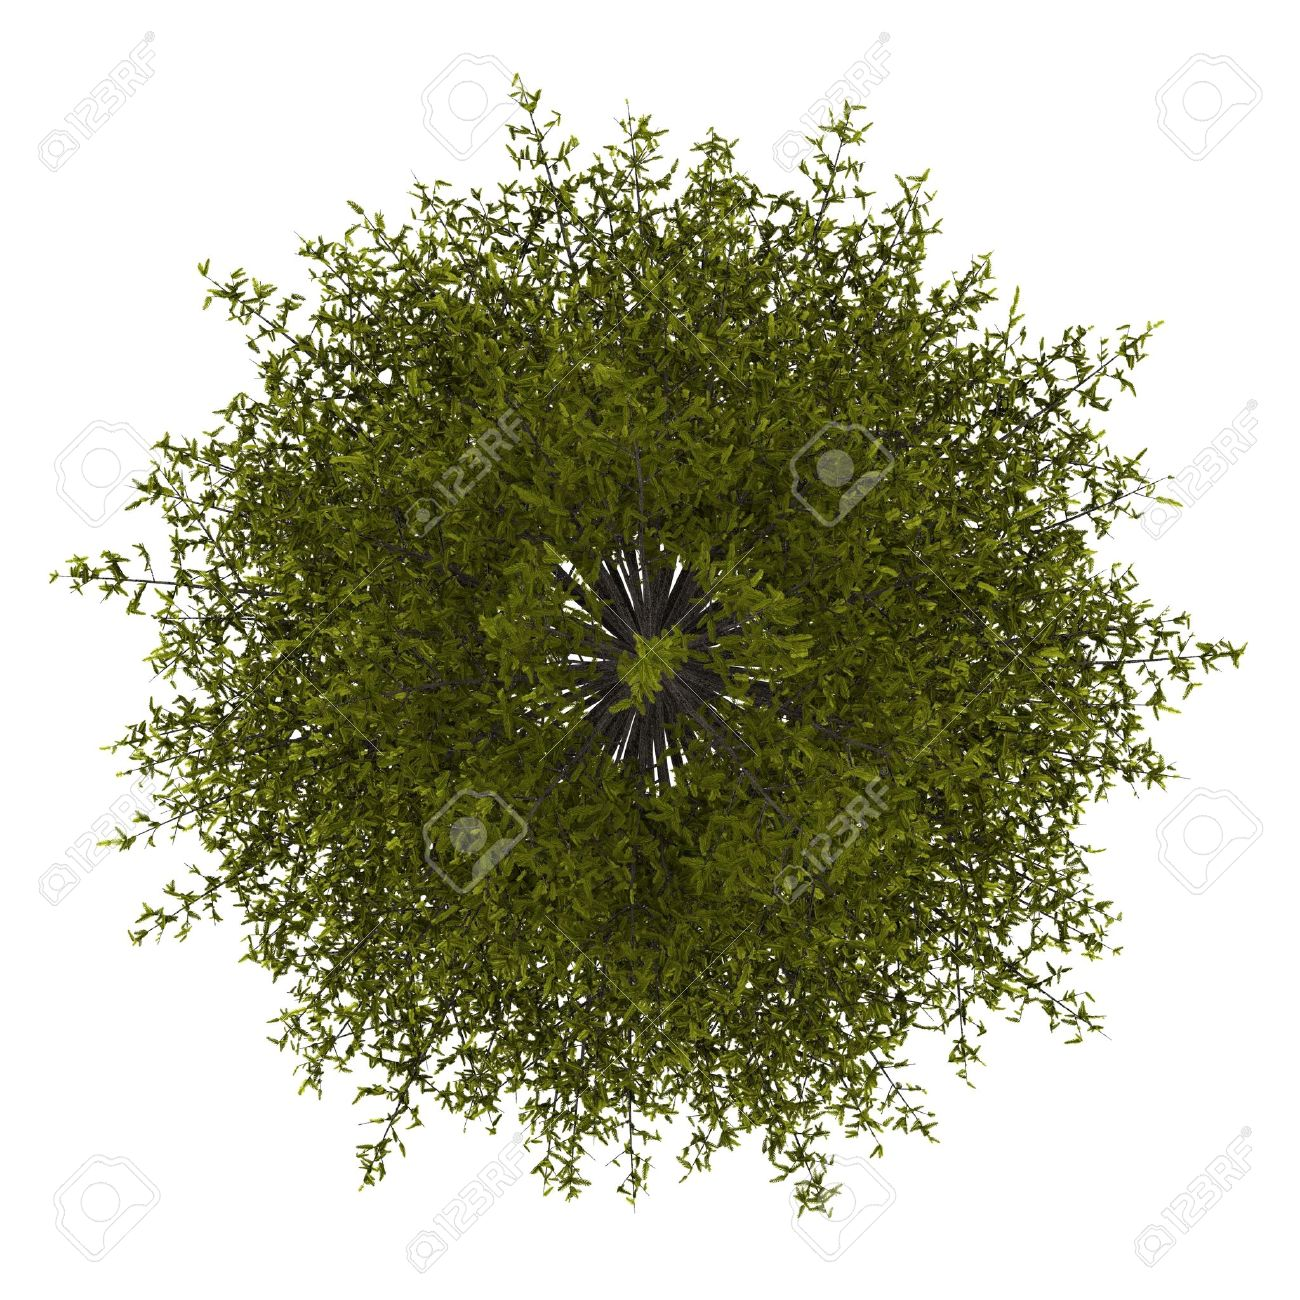 top view of european larch tree isolated on white background Stock Photo - 14512444